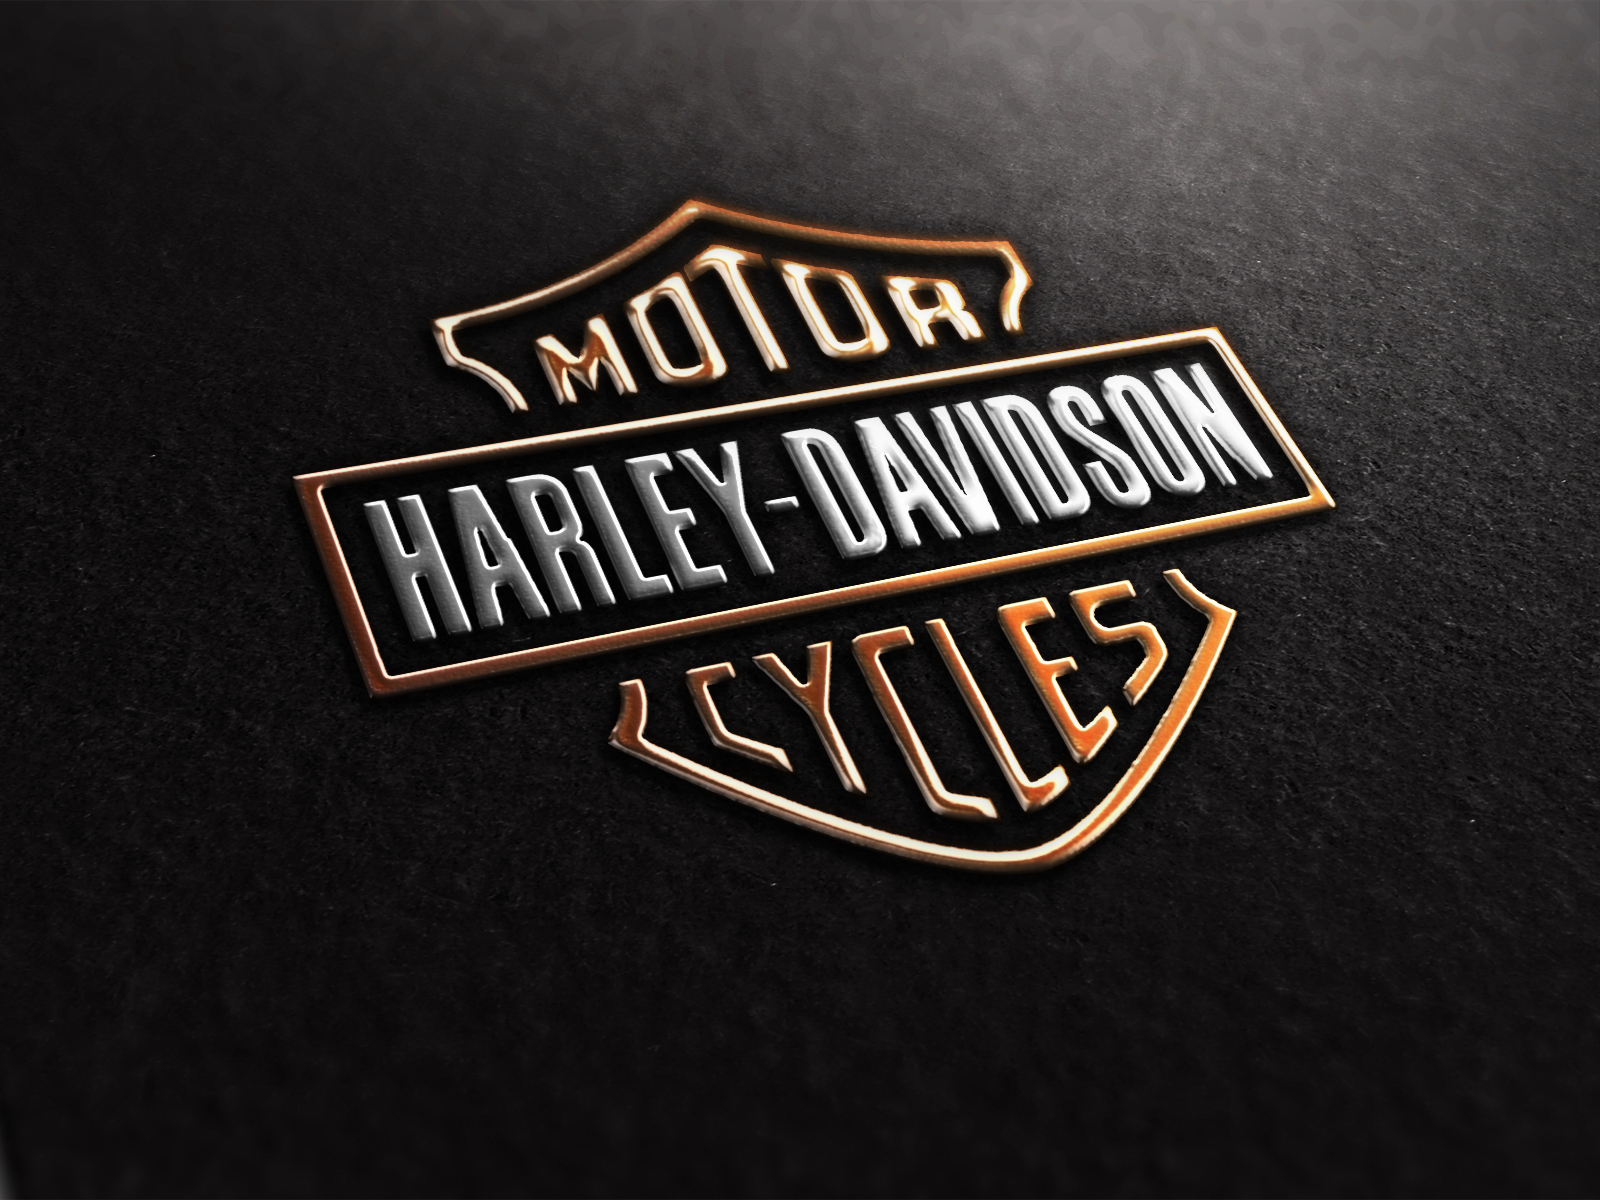 Harley Davidson Logo wallpapers Harley Davidson Logo stock photos 1600x1200